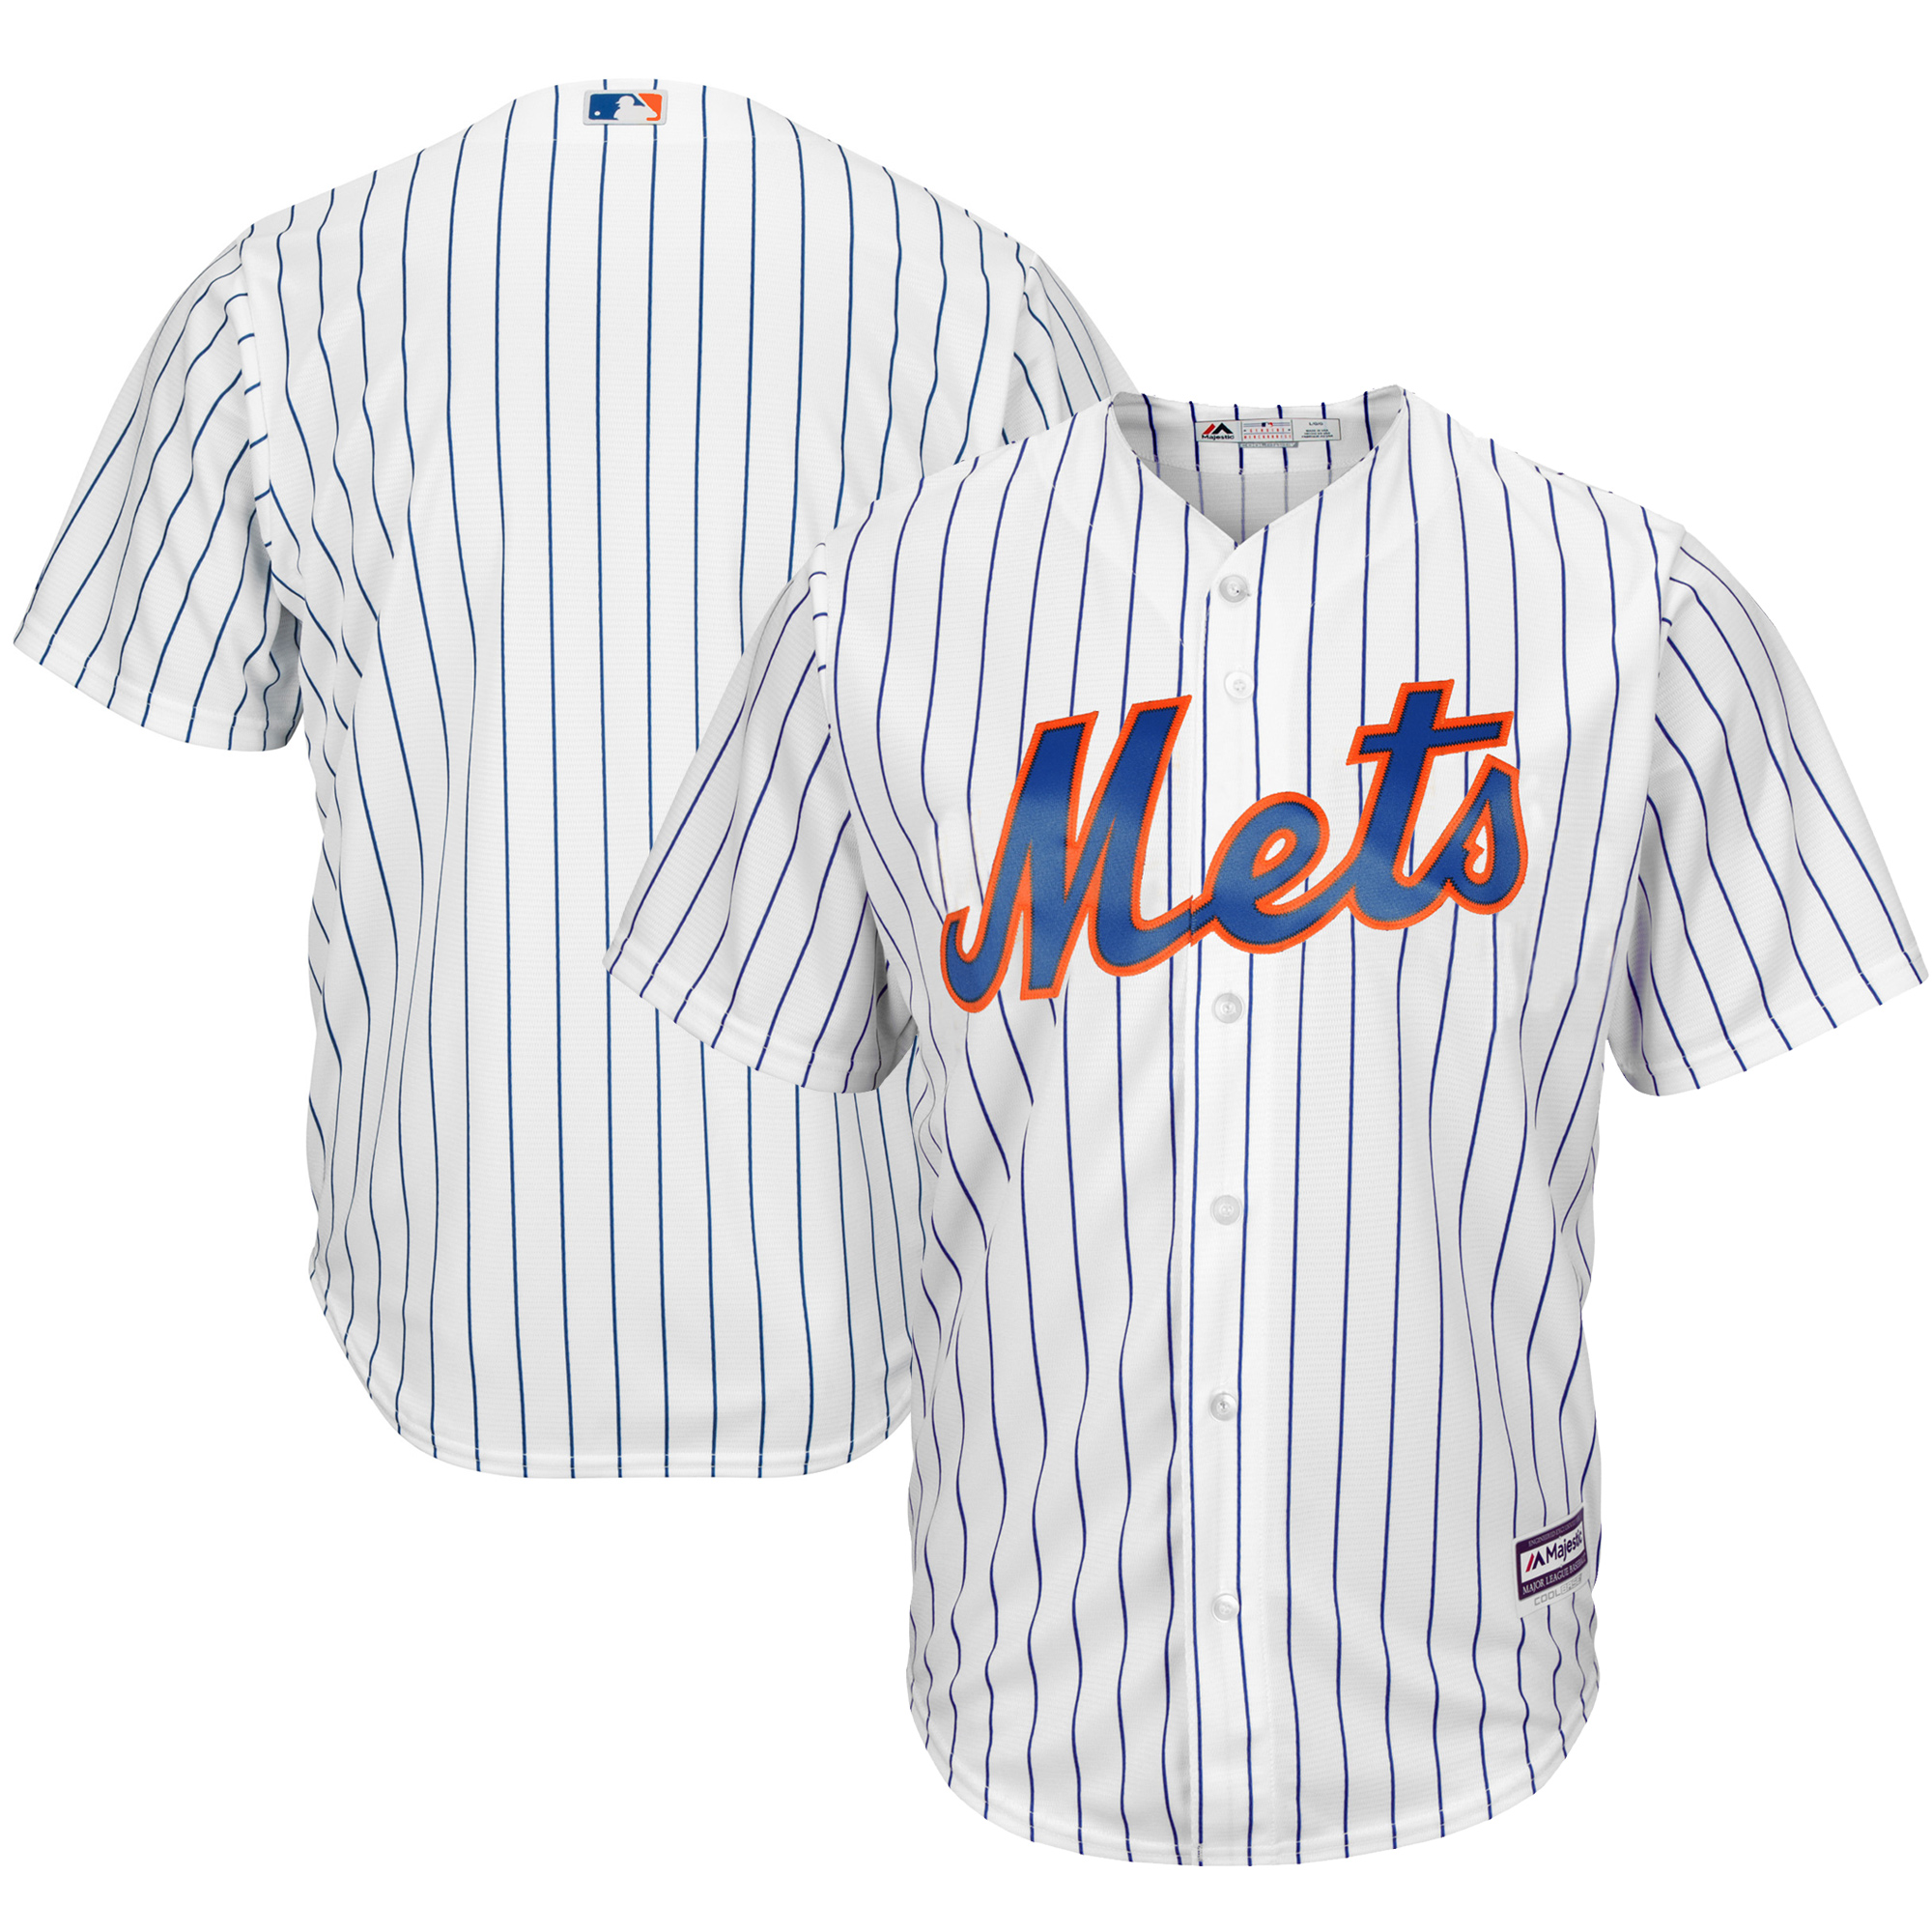 New York Mets Majestic Official Cool Base Jersey White by MAJESTIC LSG